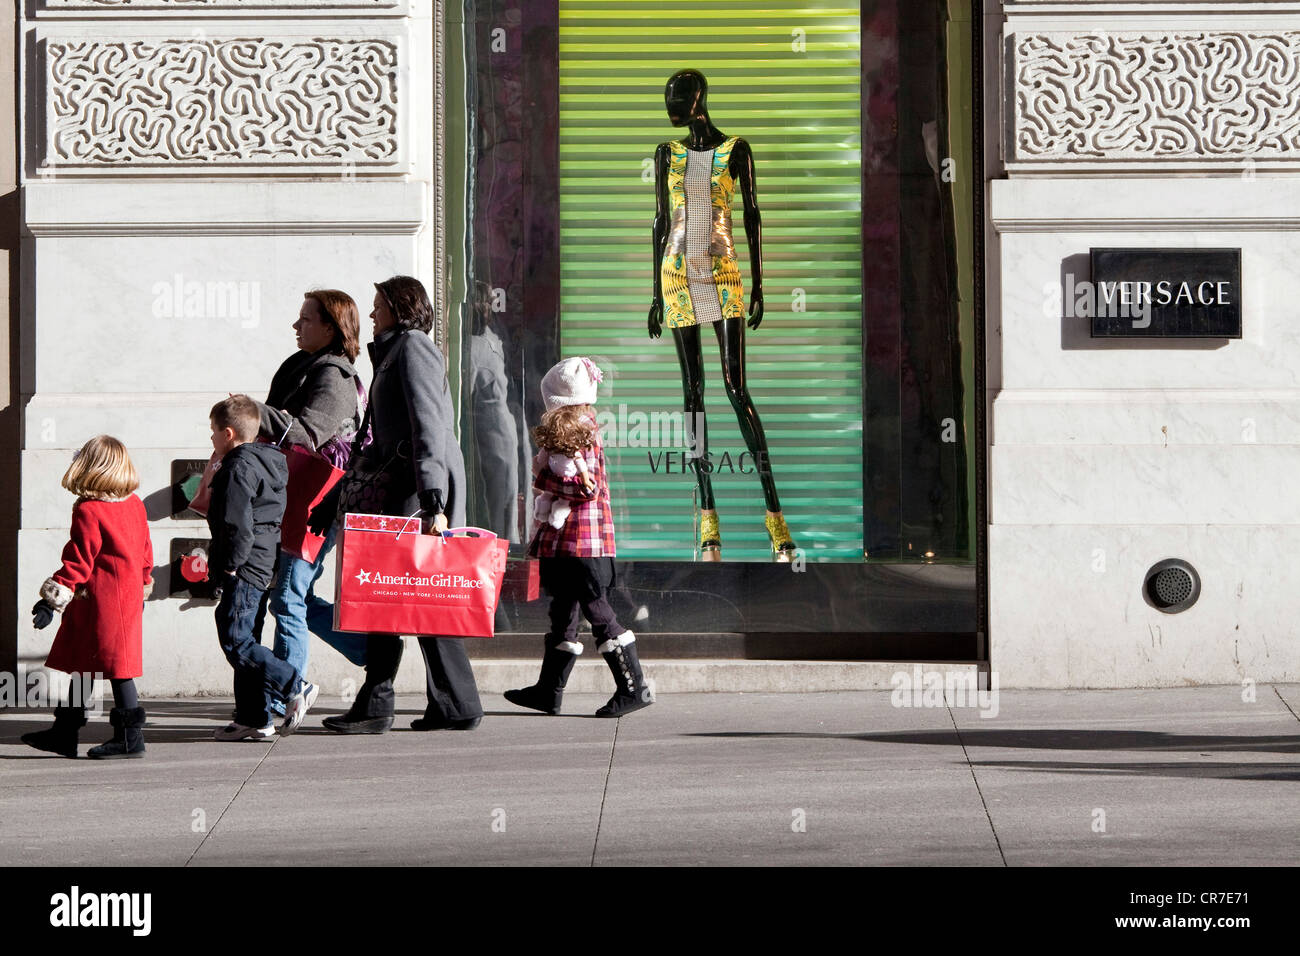 United States, New York City, Manhattan, 5th avenue, Versace boutique, window and pedestrians - Stock Image